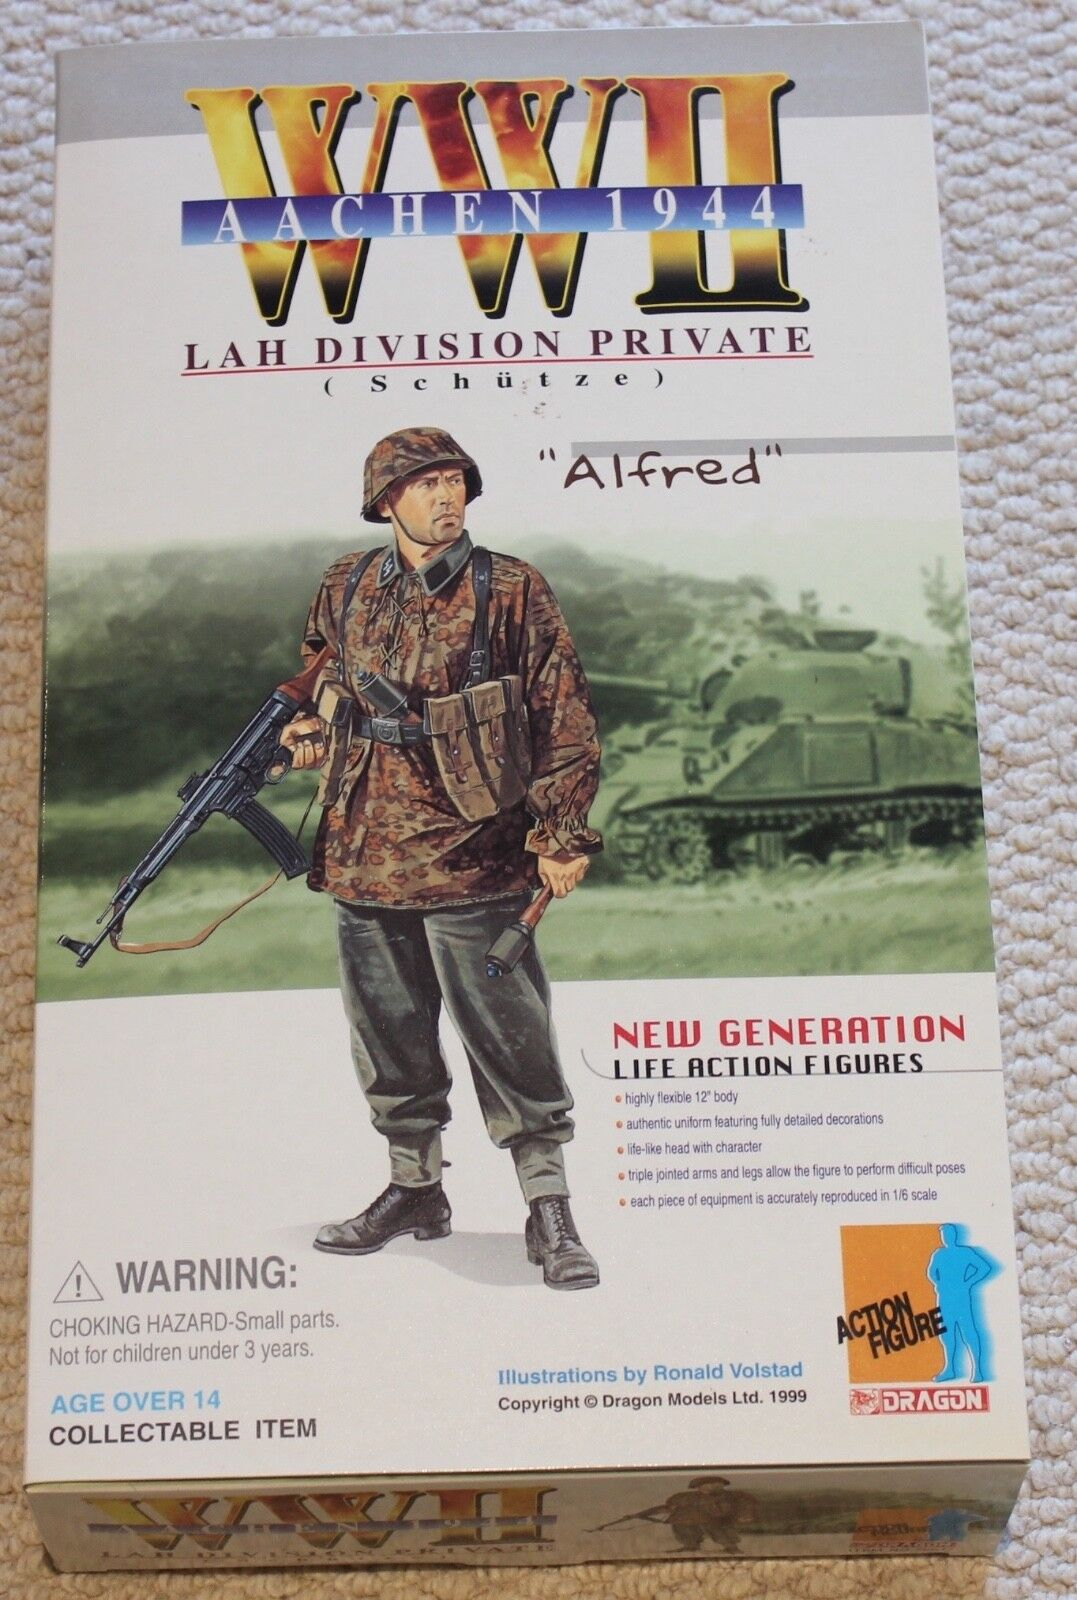 Dragon action figure 1 6 ww11 german alfrot 12'' boxed did cyber hot toy